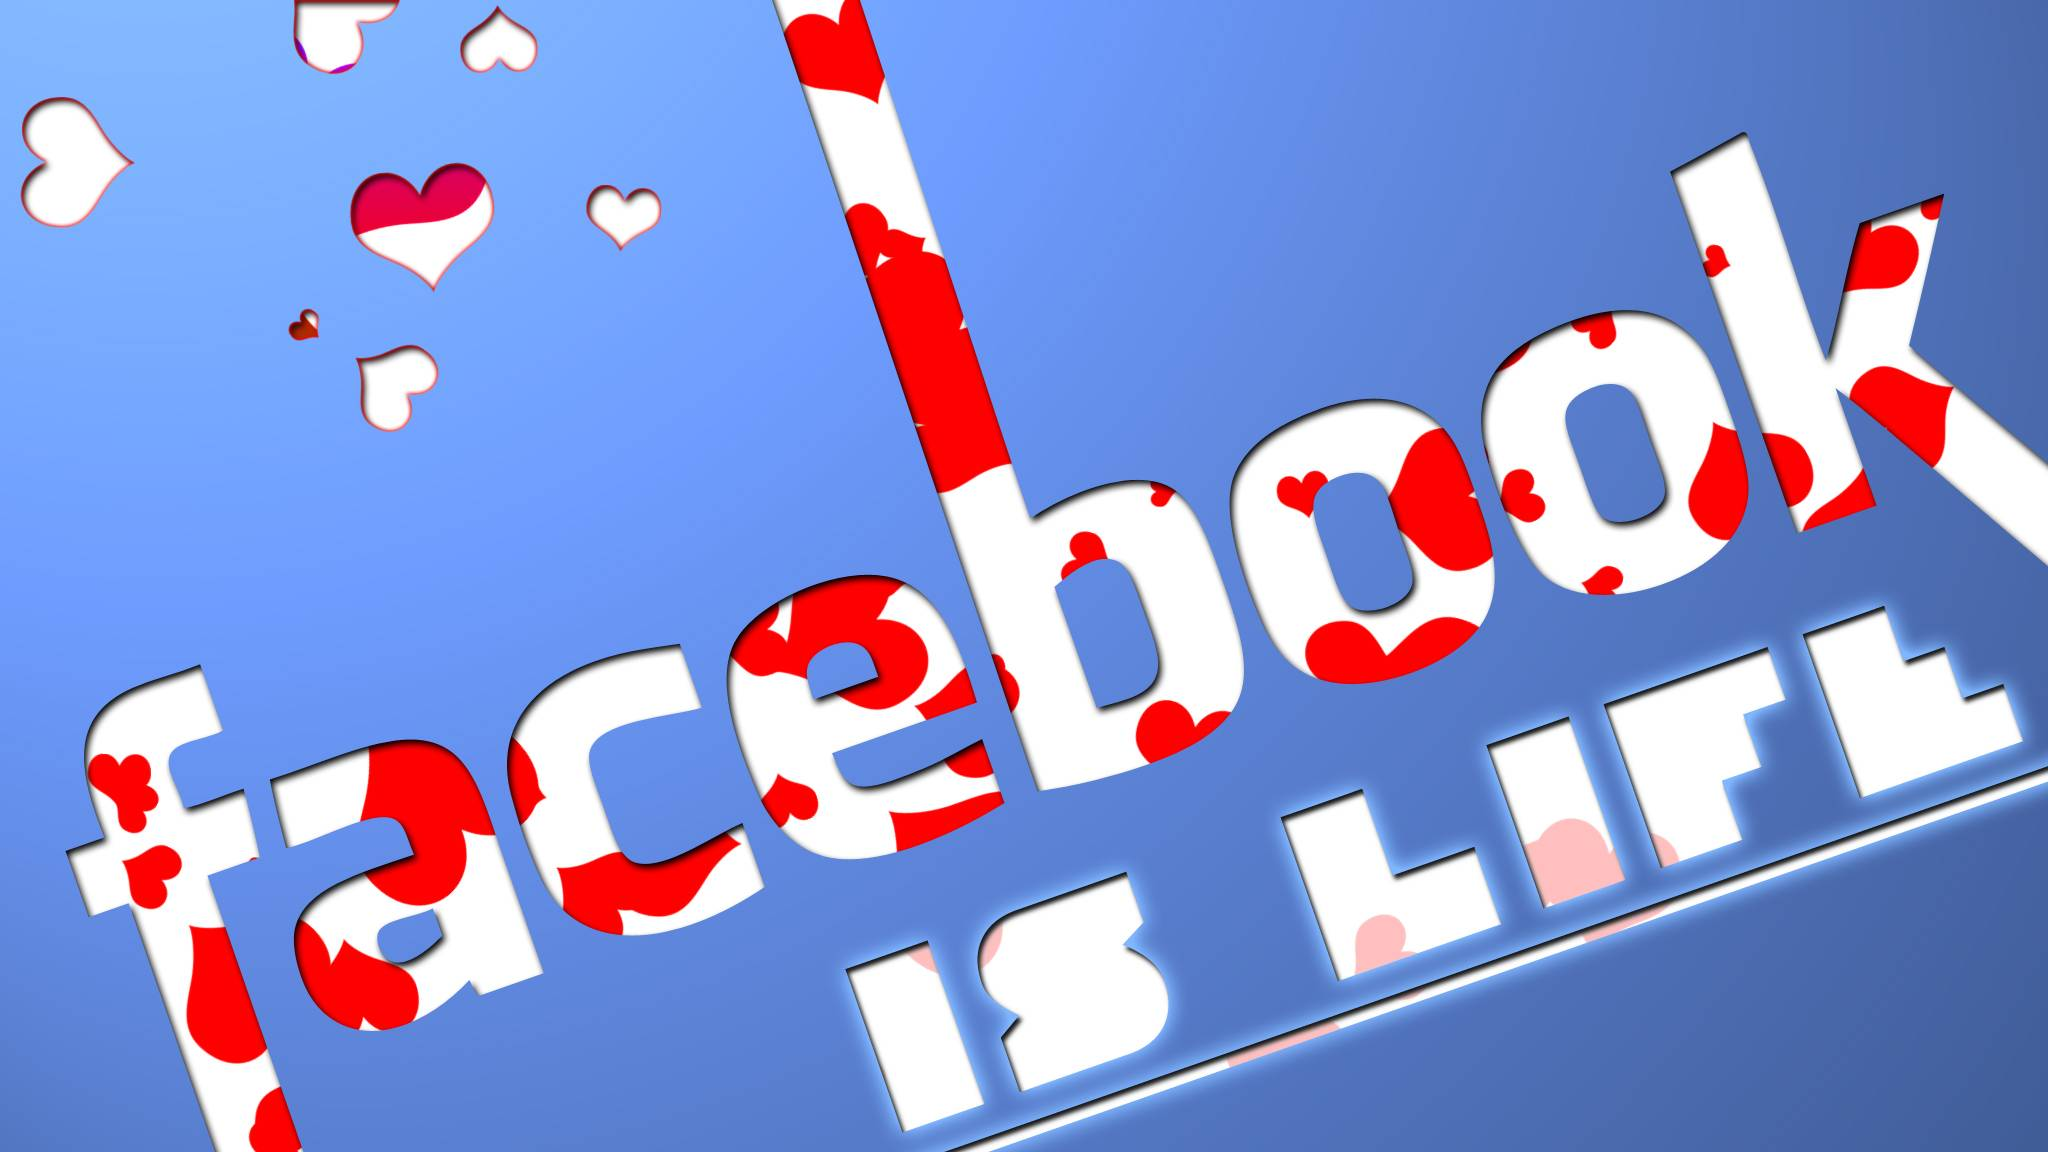 Wallpaper For Fb Profile: Wallpapers For FB